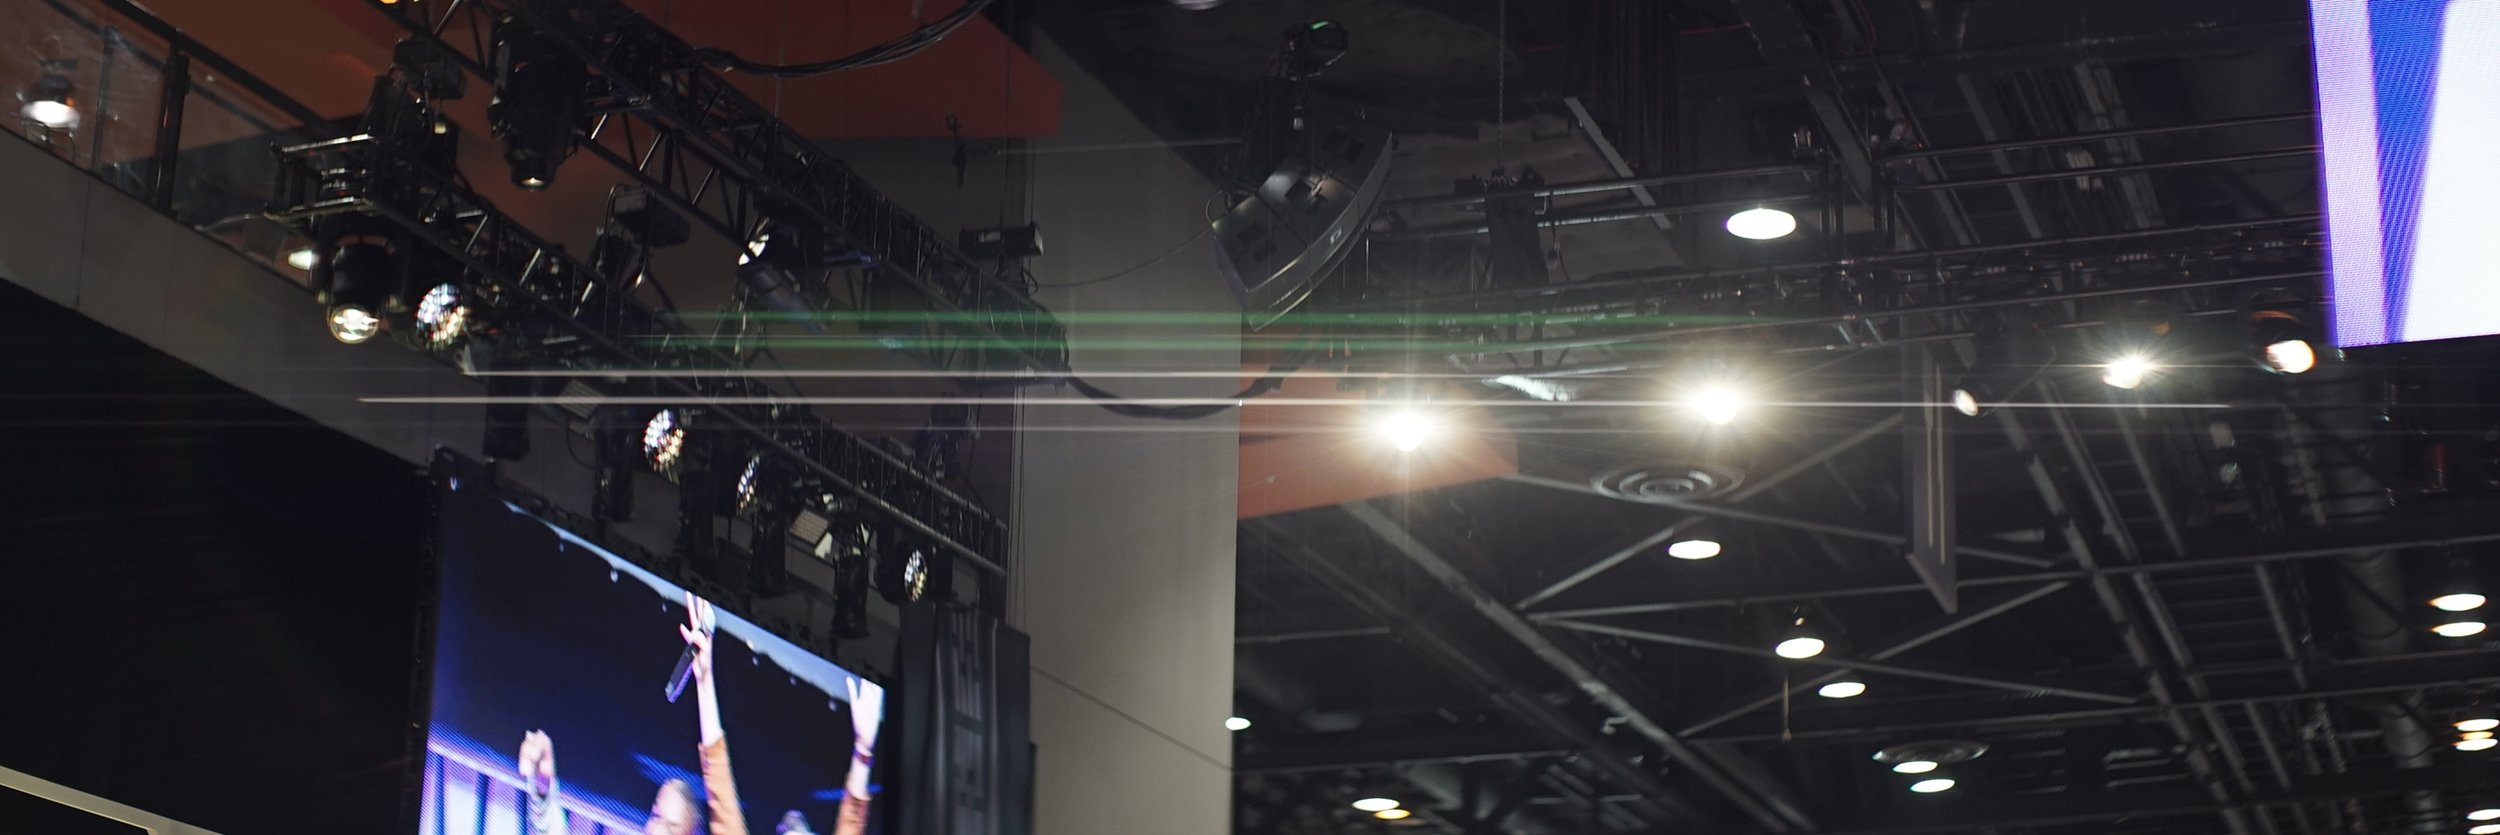 Lomo 75mm Anamorphic Lens | Flares from the Star Wars Show stage lighting. McCormick Place, Chicago, IL. - Photo by: Keith Nickoson